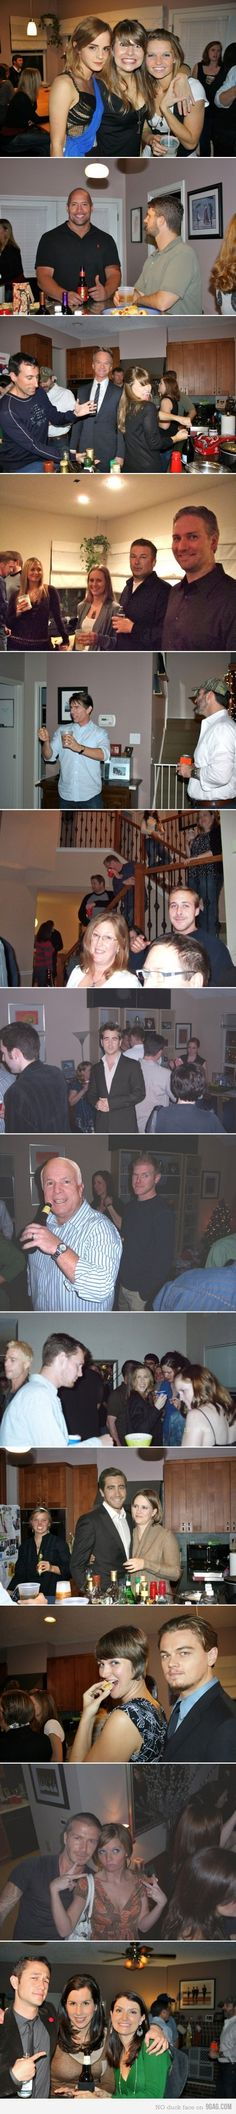 Facebook trolling. photoshop celebs into party pics